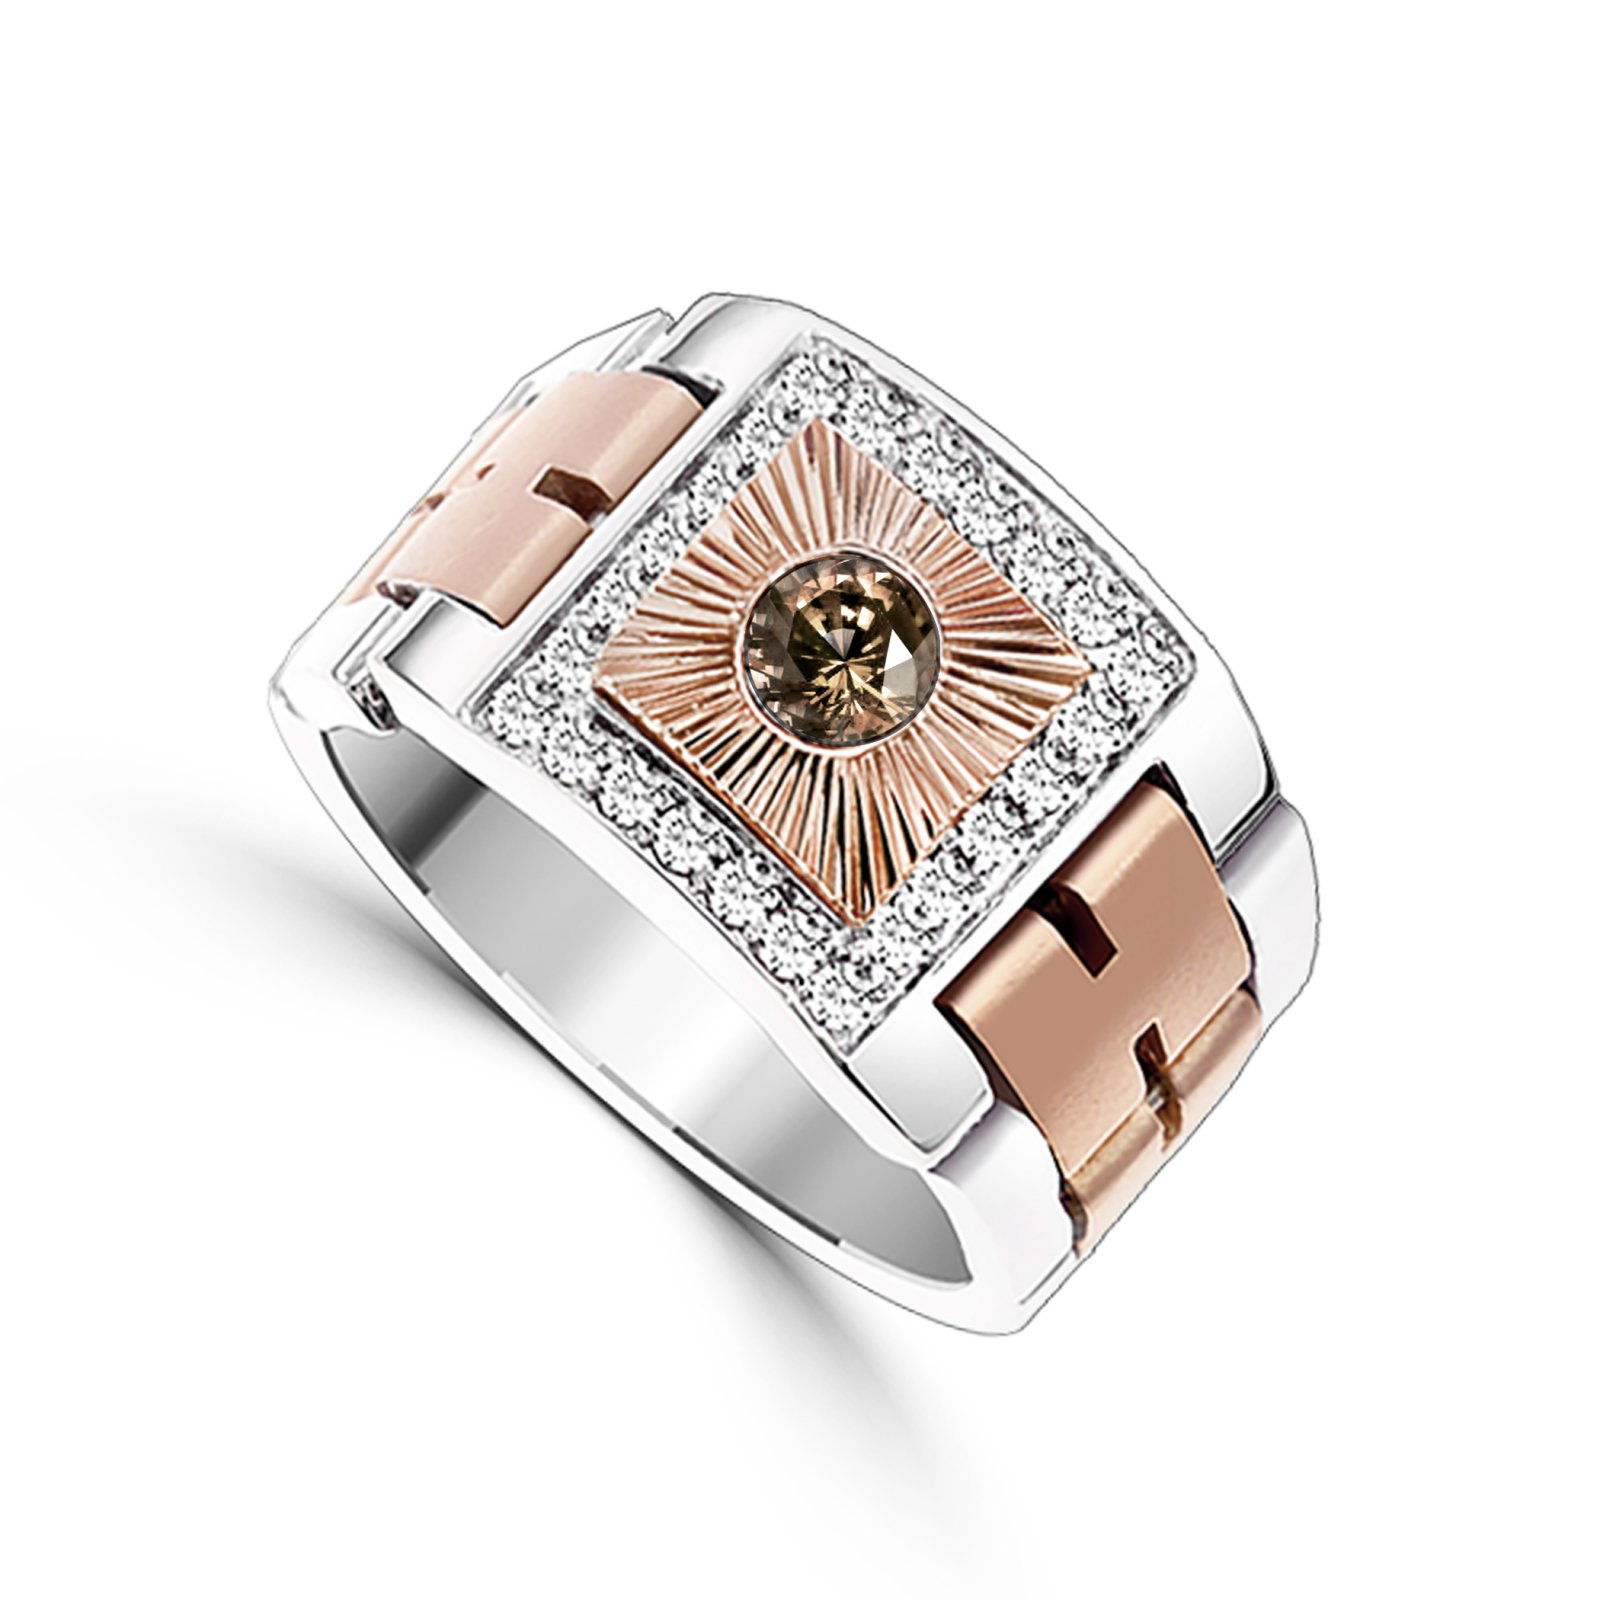 Men's Custom 0.71 Total Carat Weight  Chocolate Diamond Ring Set in 14 K Two Tone White and Rose Gold